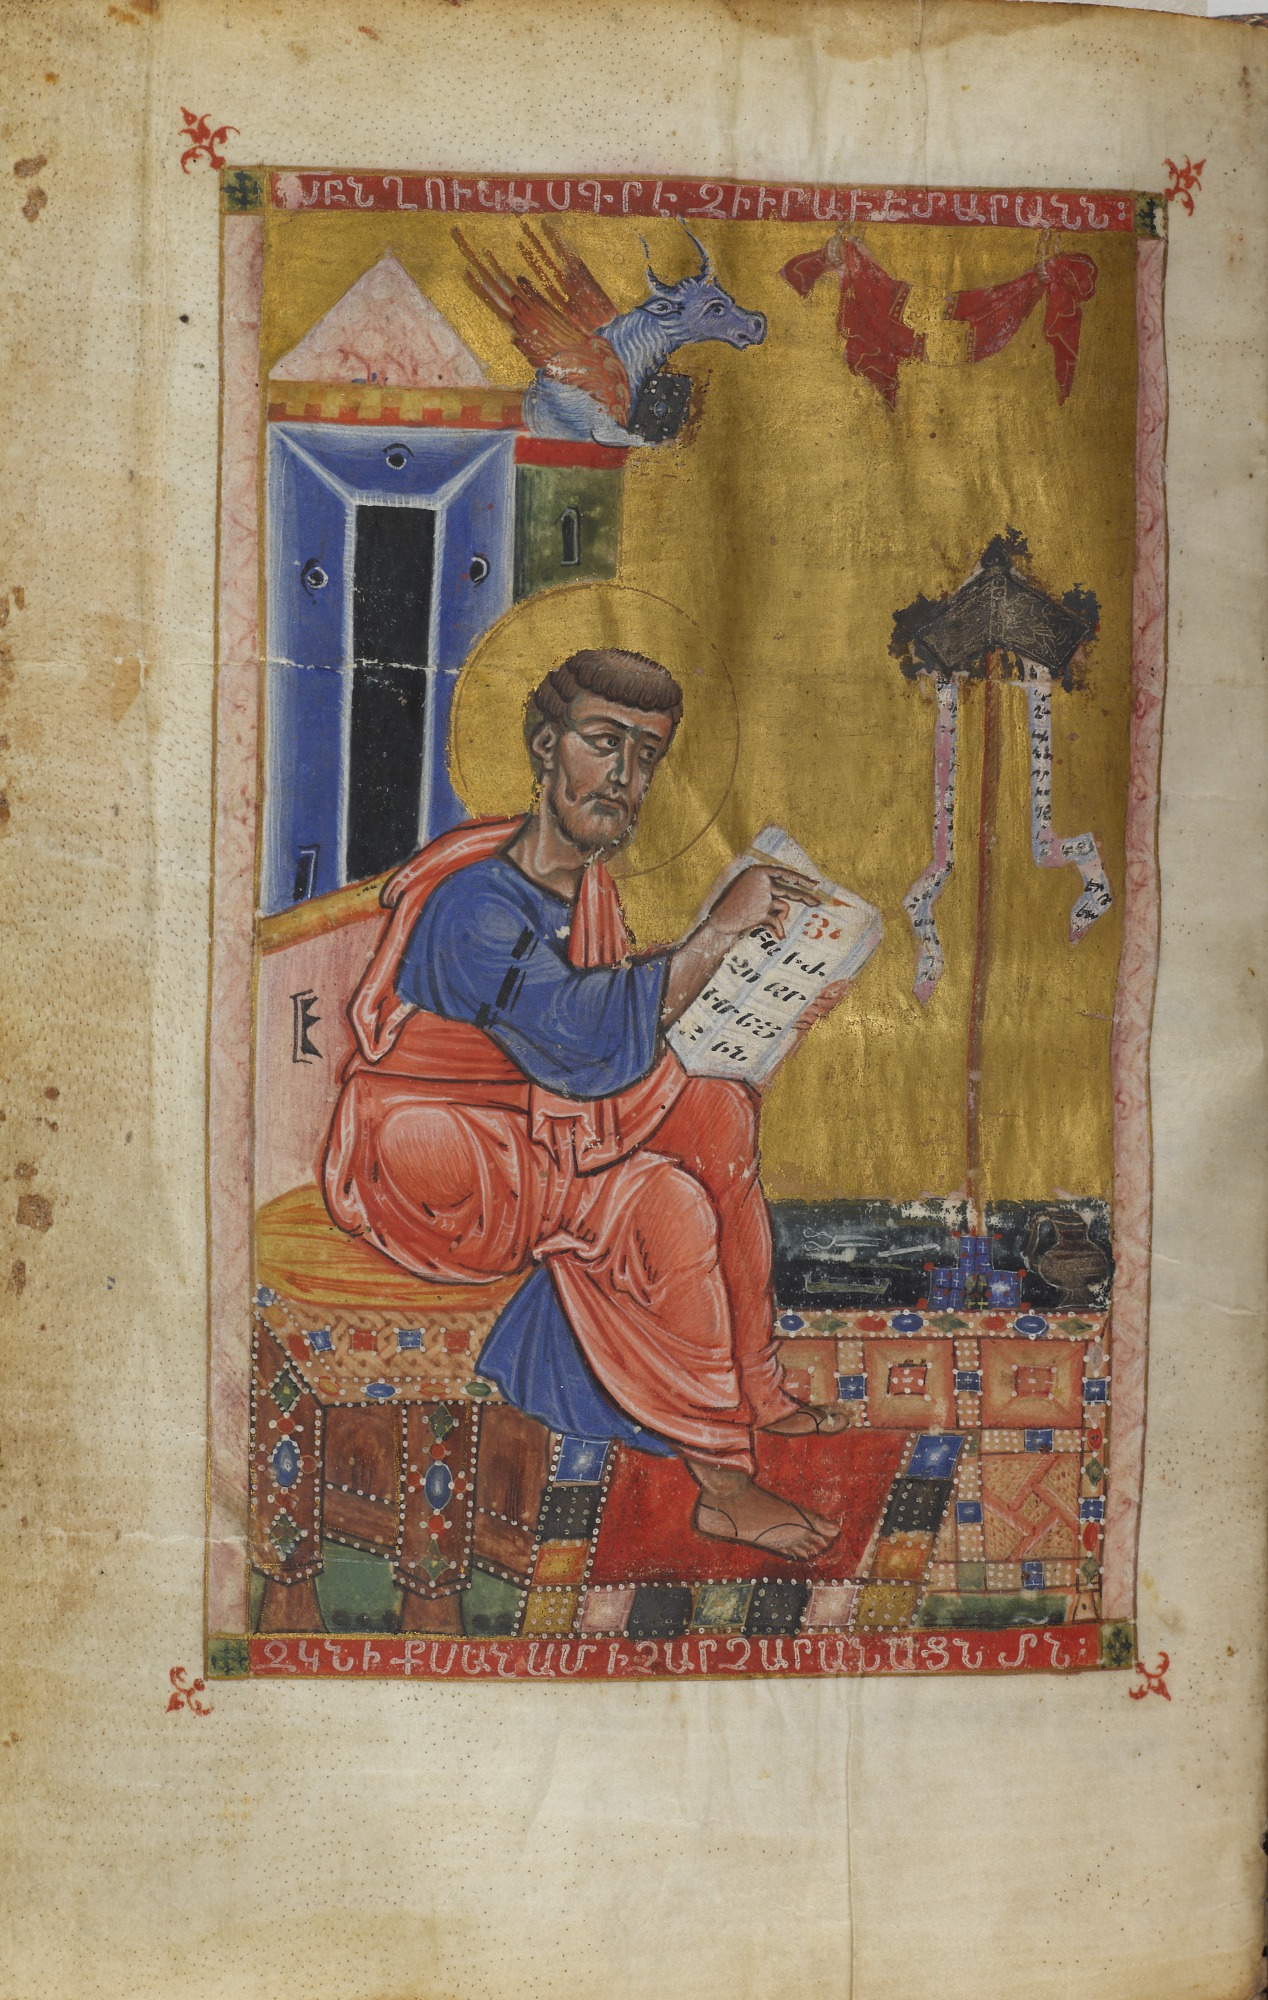 folio 91 verso: Portrait of Mark in a Gospel According to the Four Evangelists